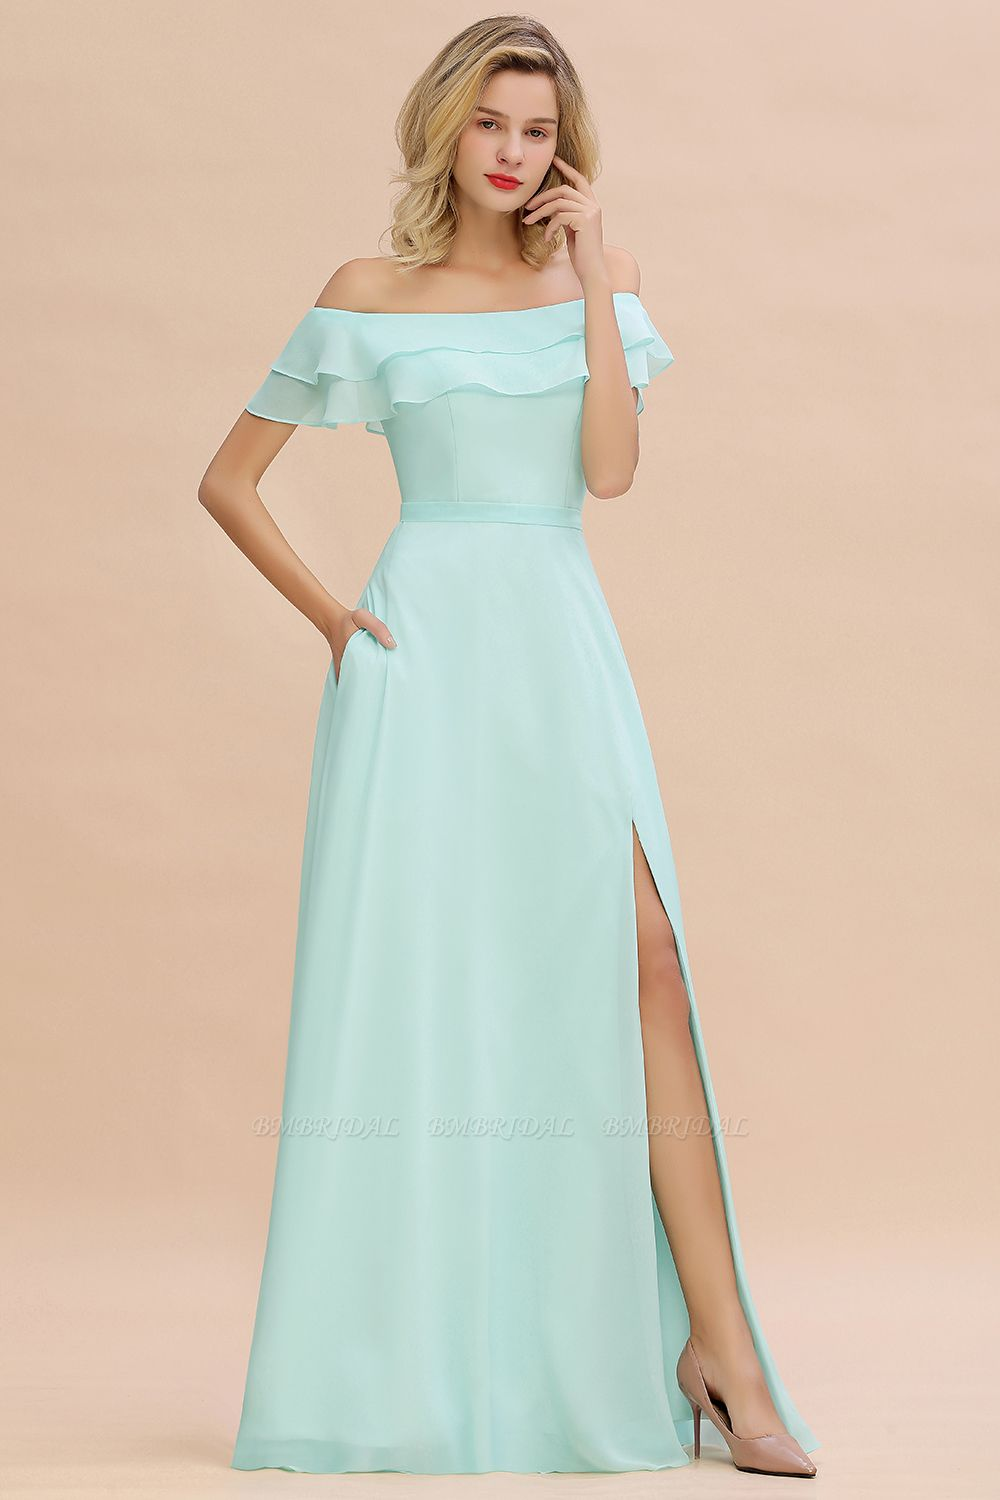 Exquisite Off-the-shoulder Slit Mint Green Bridesmaid Dress With Pockets